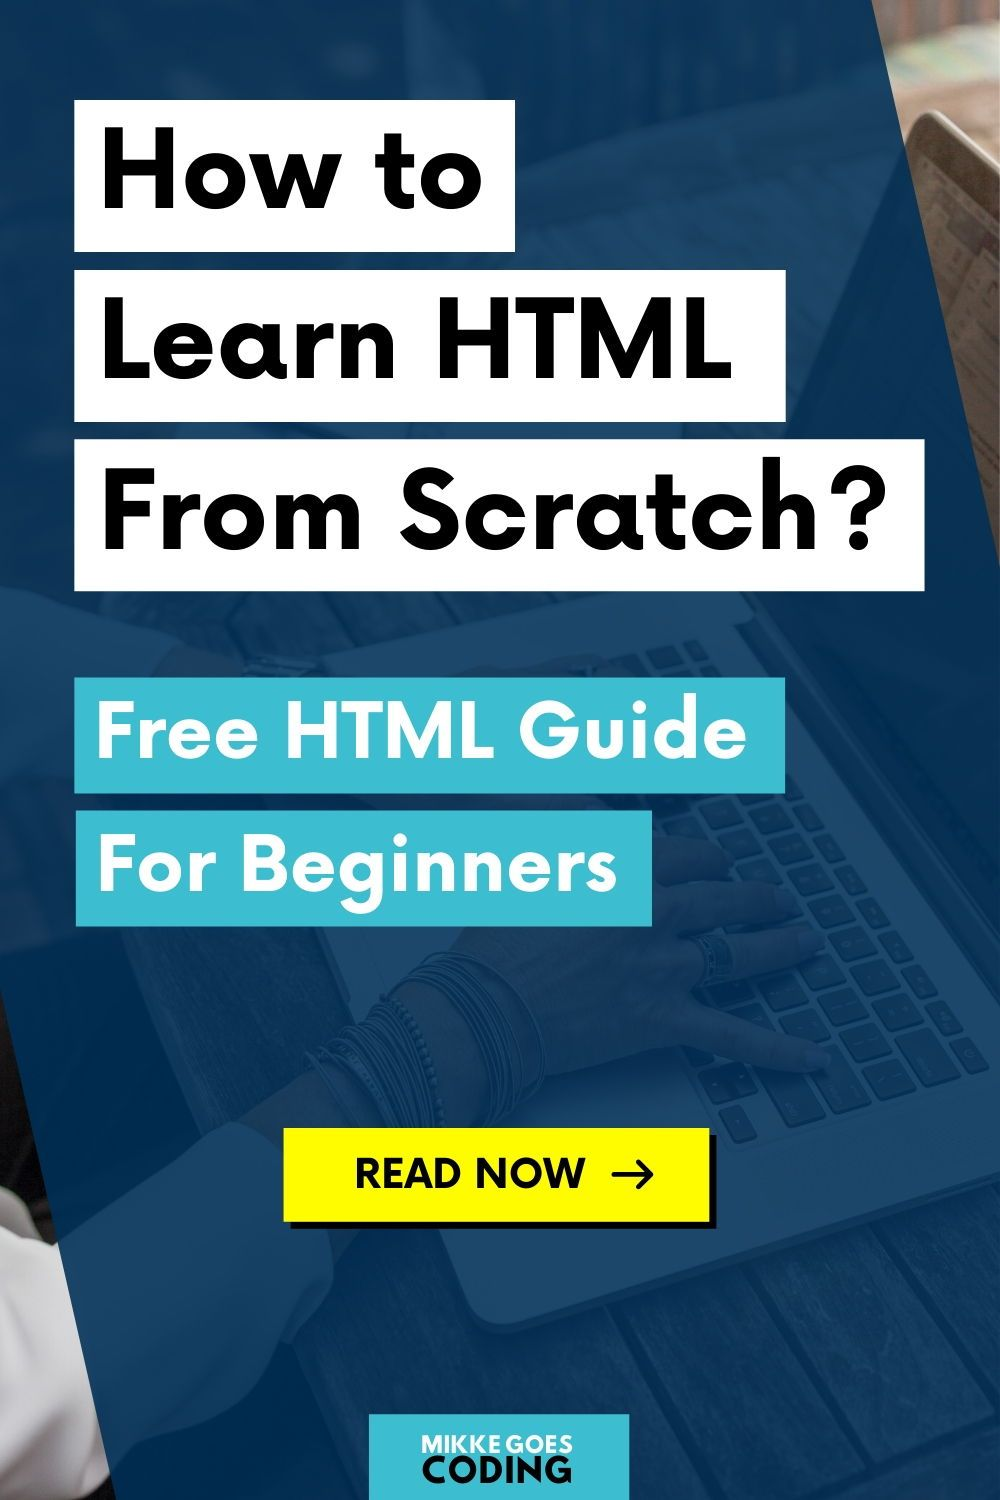 How To Learn Html For Beginners In 2020 Web Development 101 In 2020 Learn Web Development Learn Html Html For Beginners